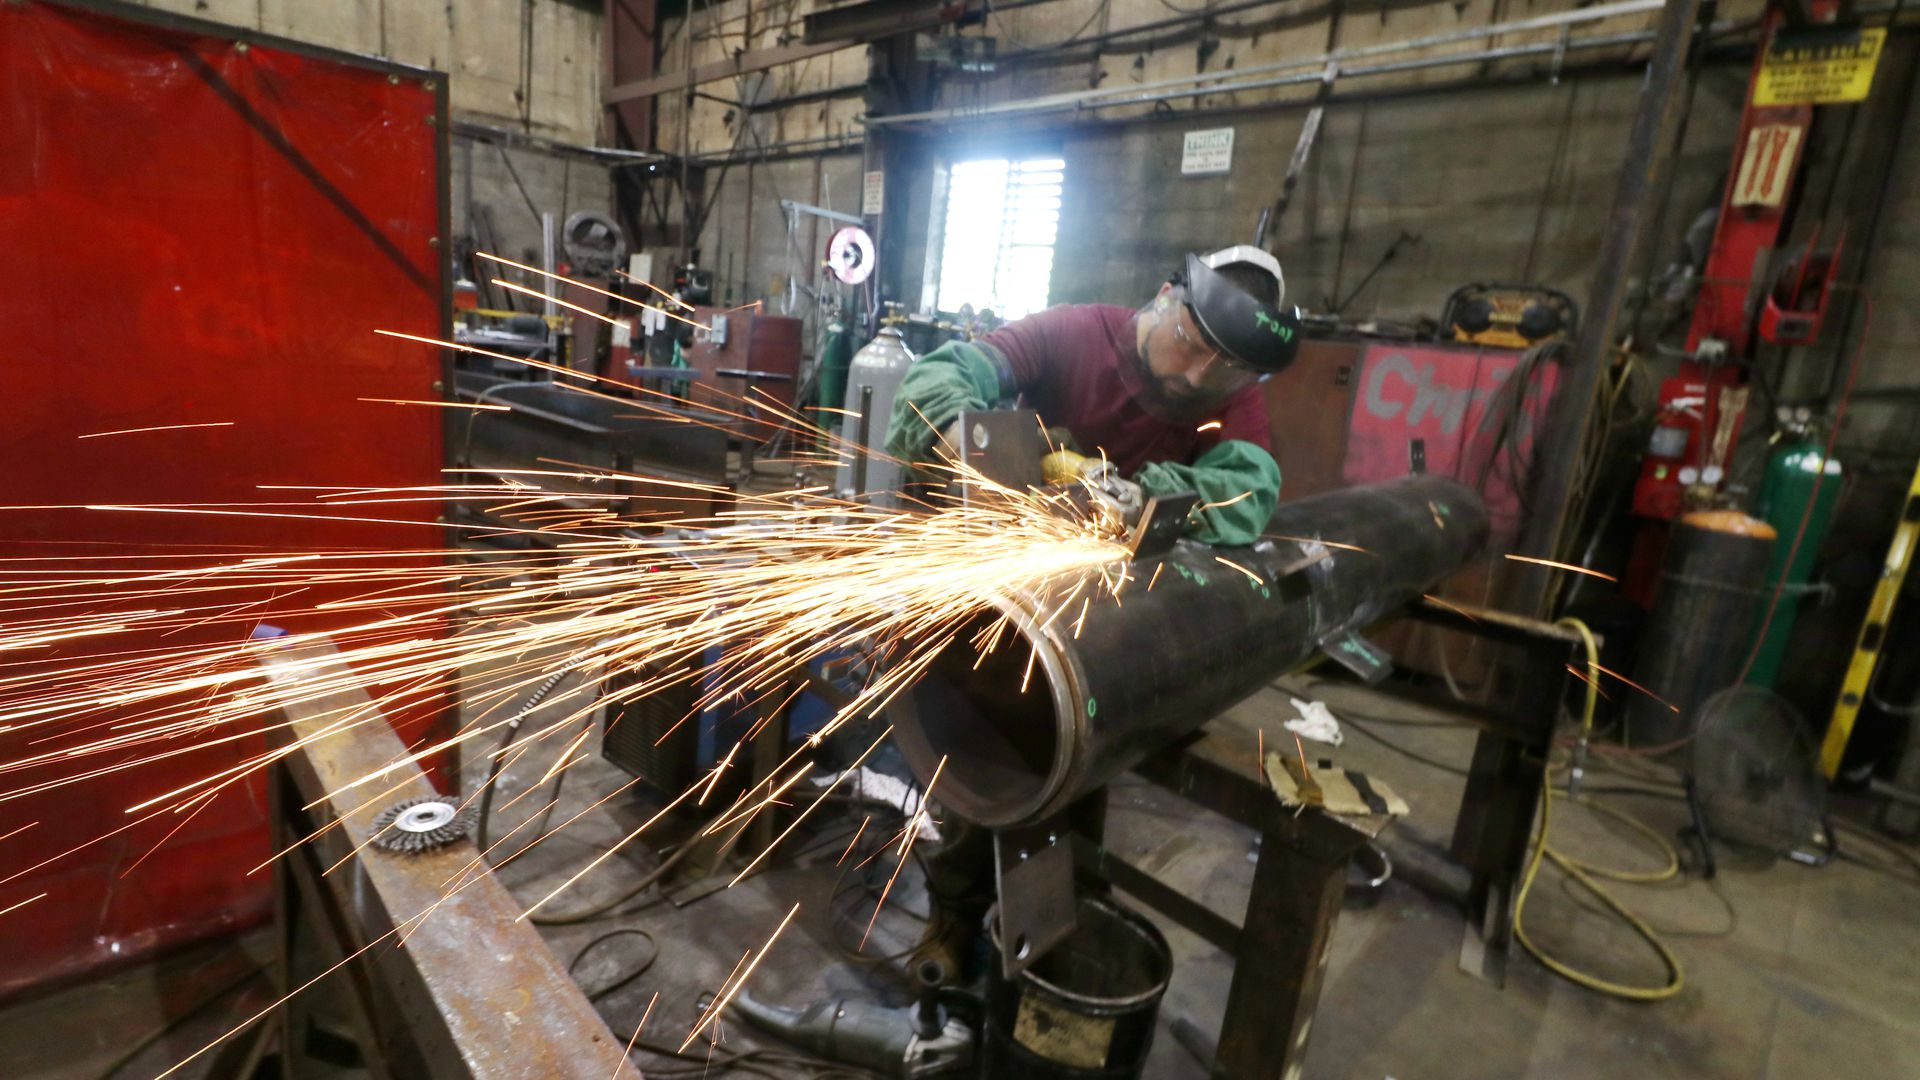 A man using an angle grinder on steel.